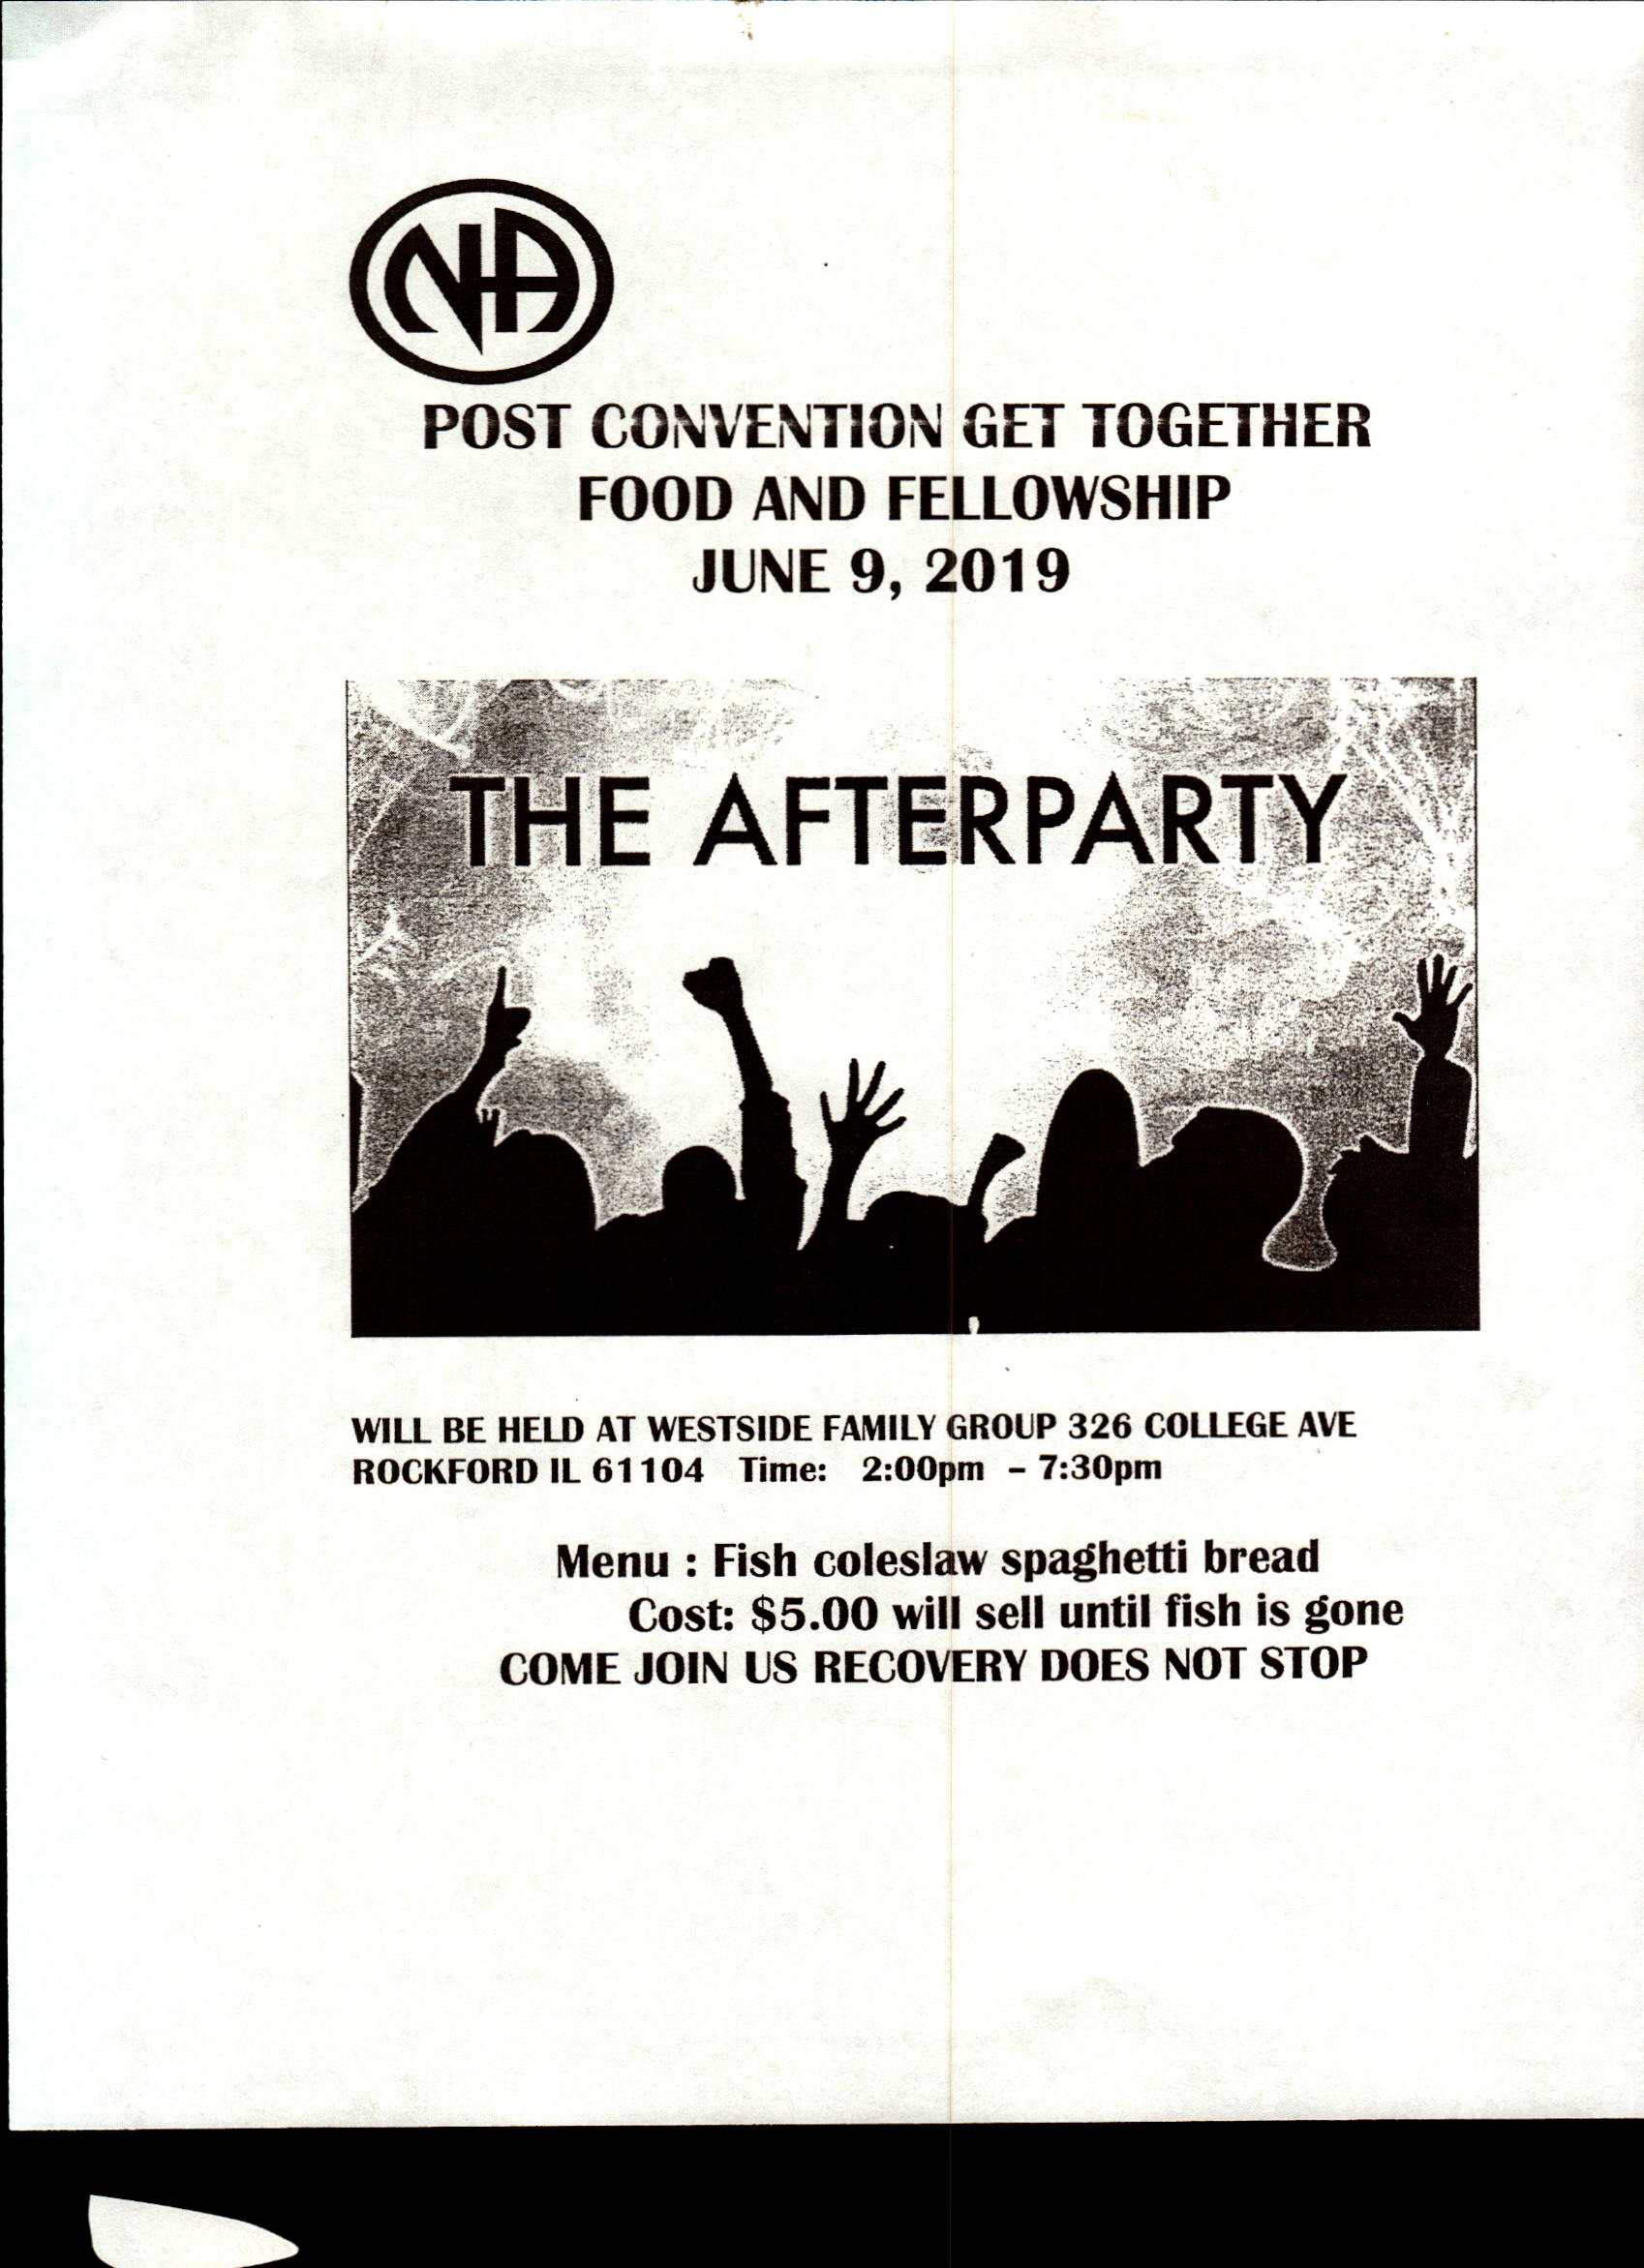 2019-06-06_After_Party.jpg